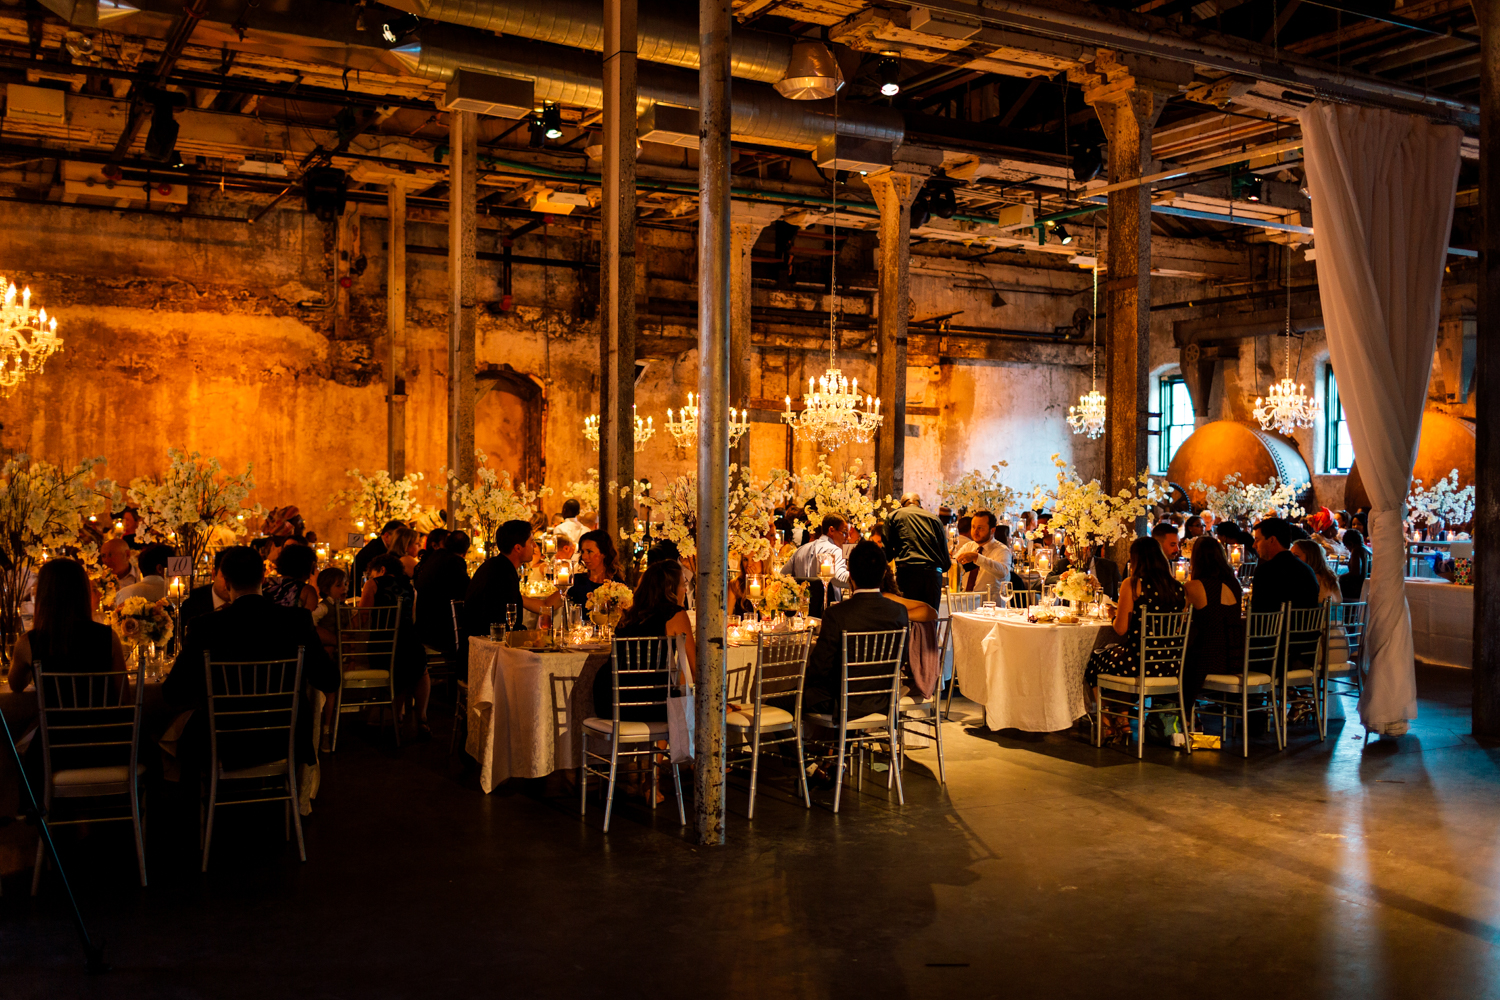 The Fermenting Cellar reception